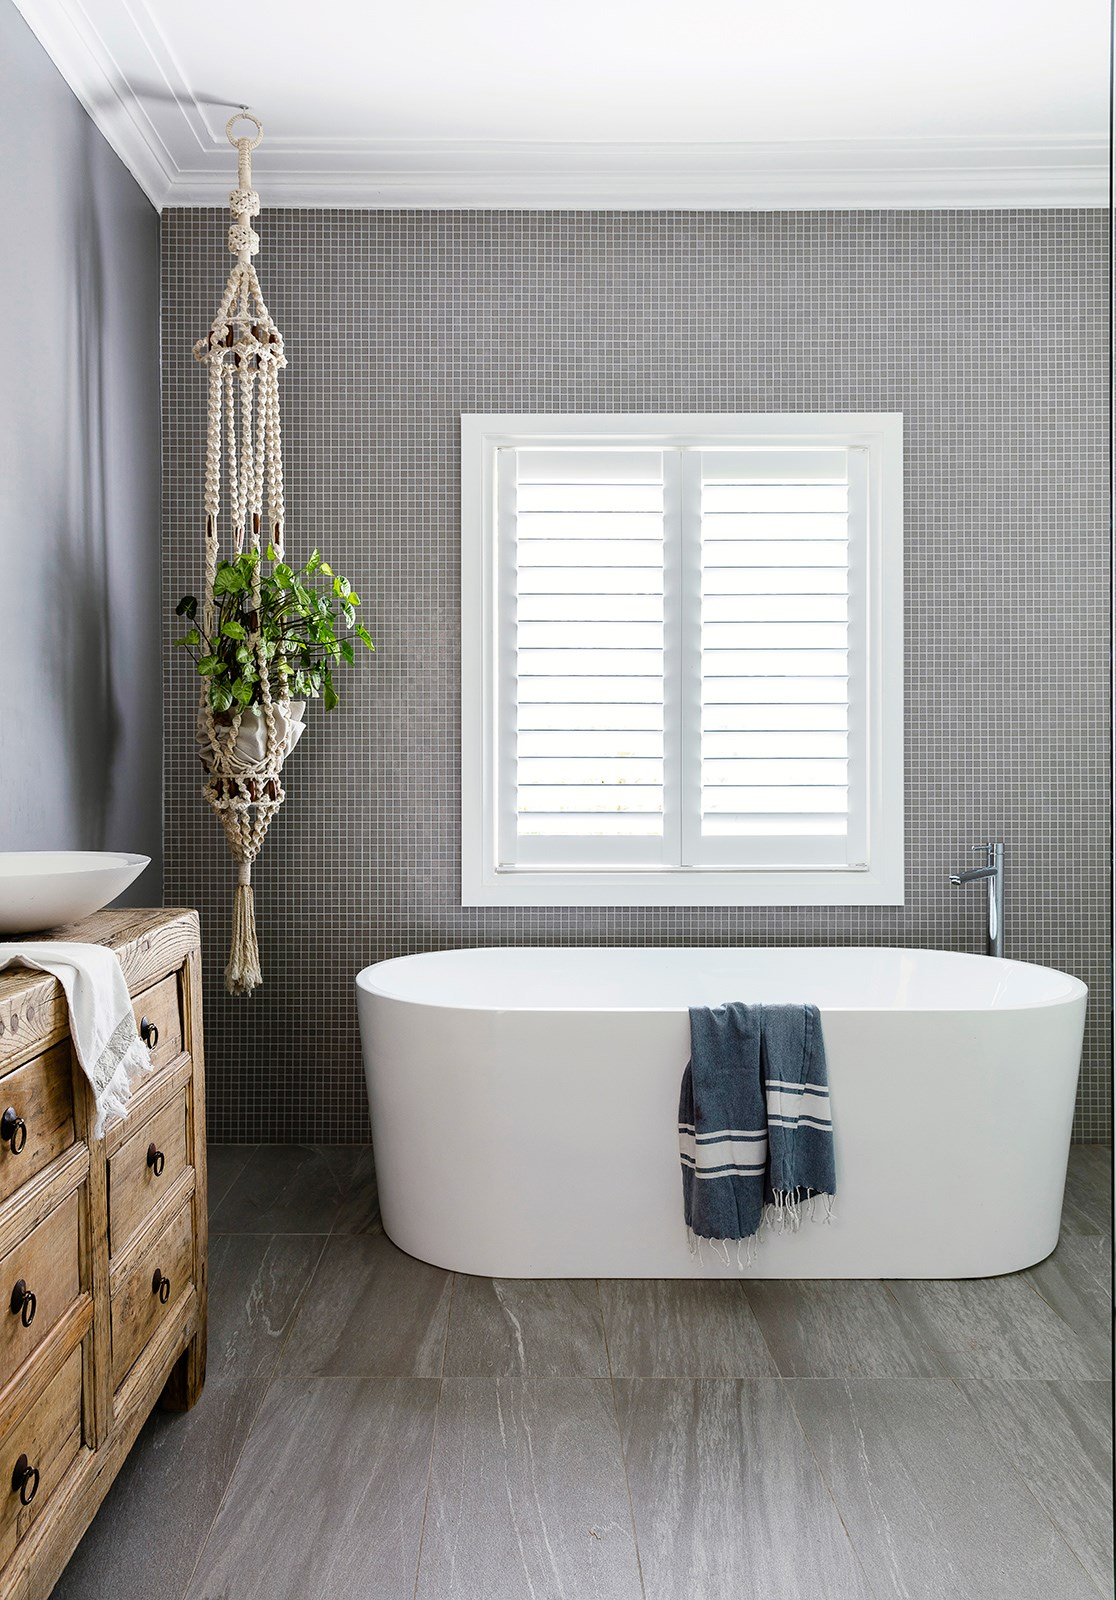 """The organic appeal of macrame and turkish towels sets off contemporary bathroom fixtures in this [serene beach house](http://www.homestolove.com.au/serene-interiors-create-beach-house-bliss-2715